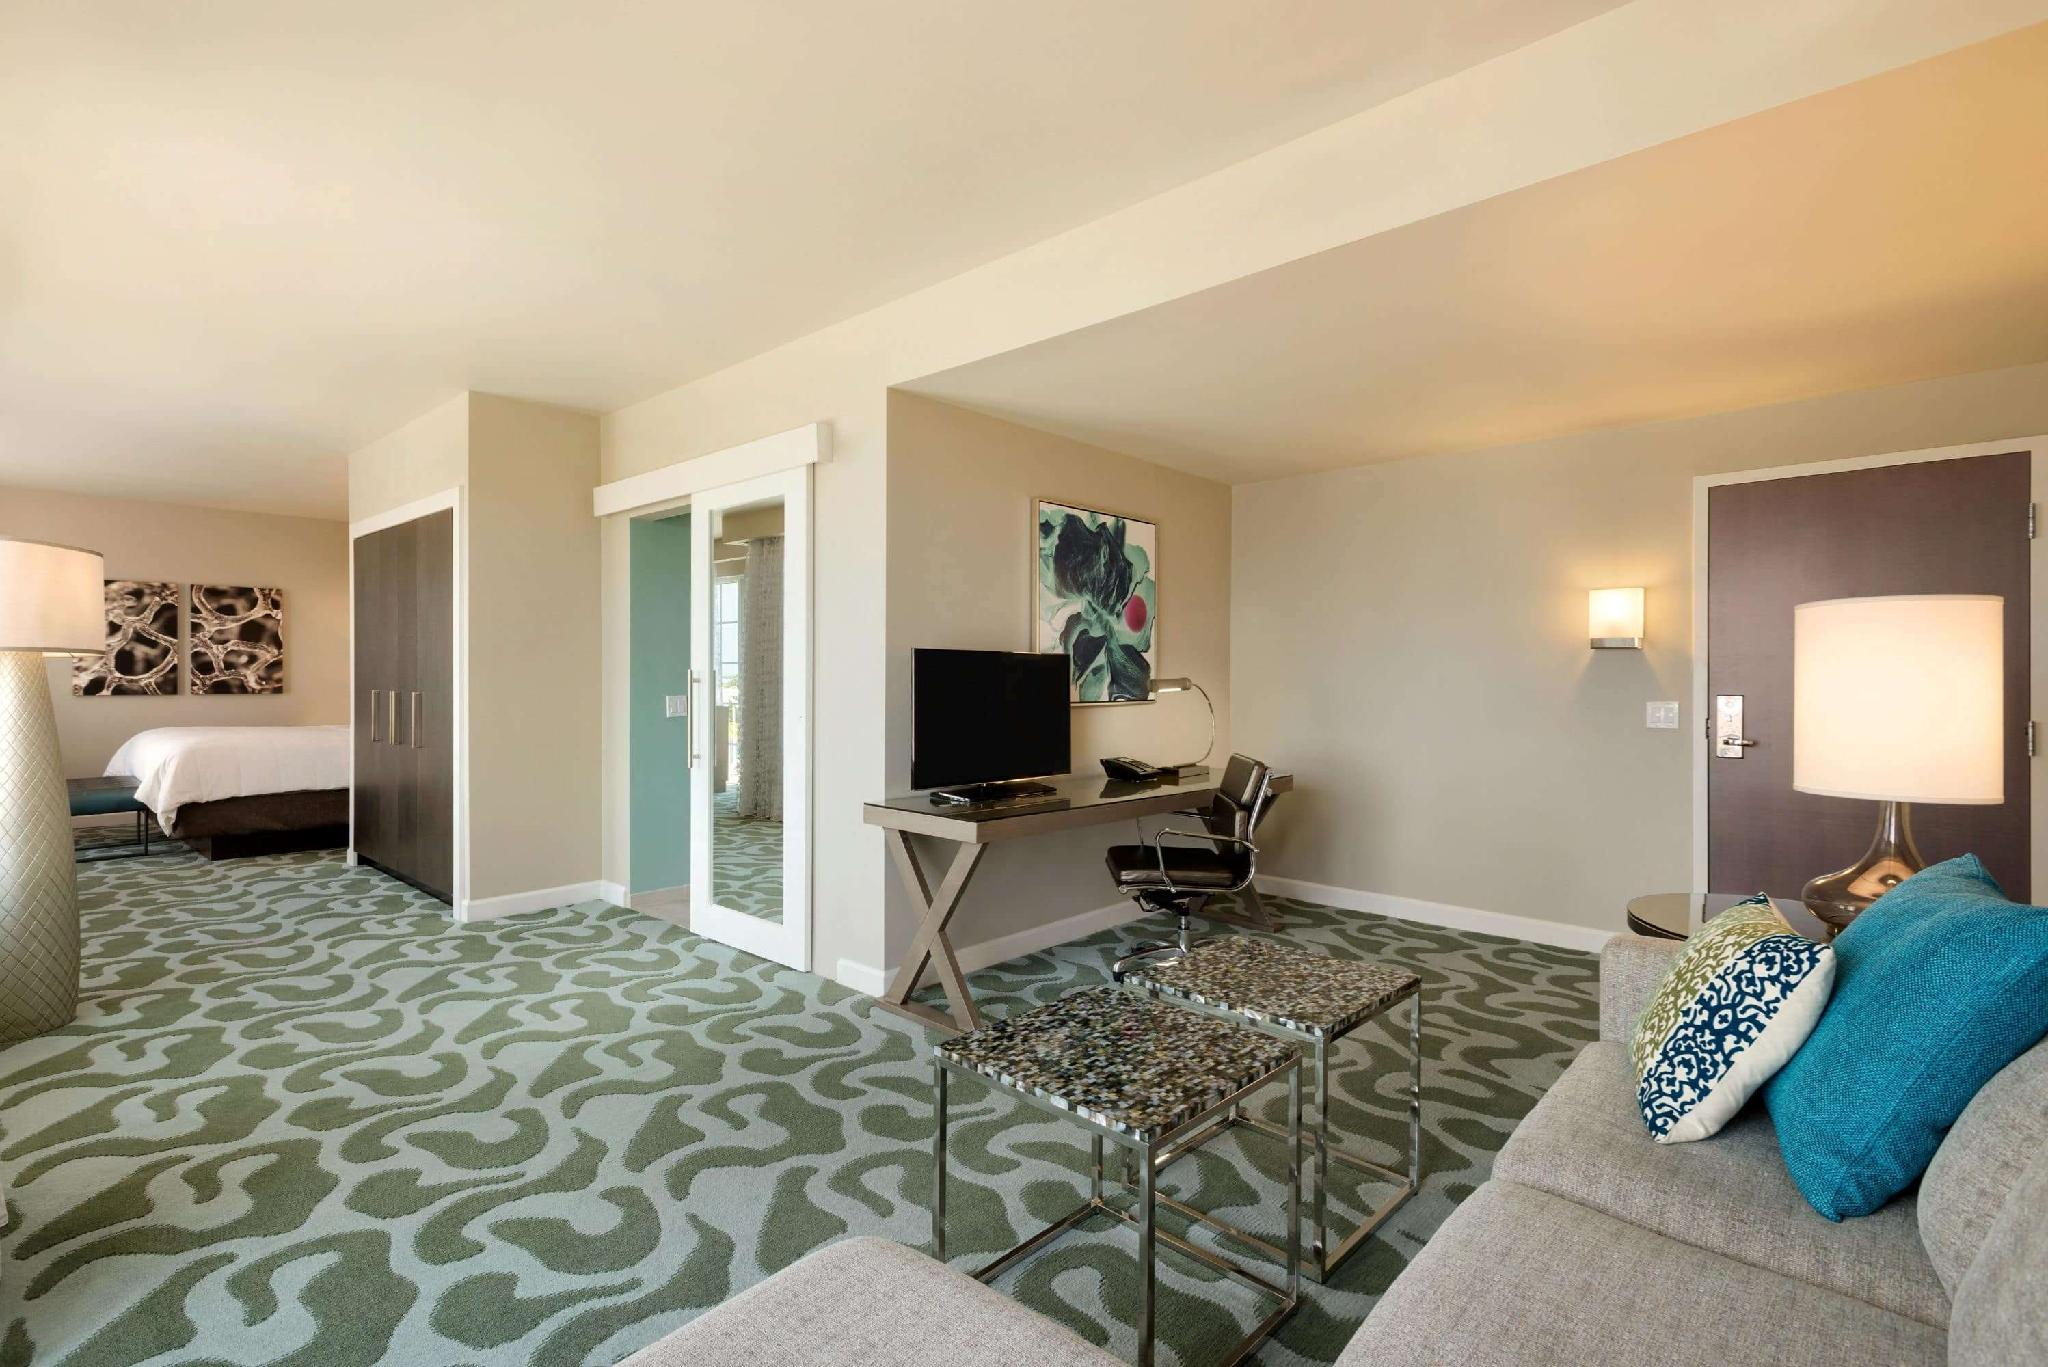 1 King Bed, Grand Suite Intracoastal View, Non-Smoking